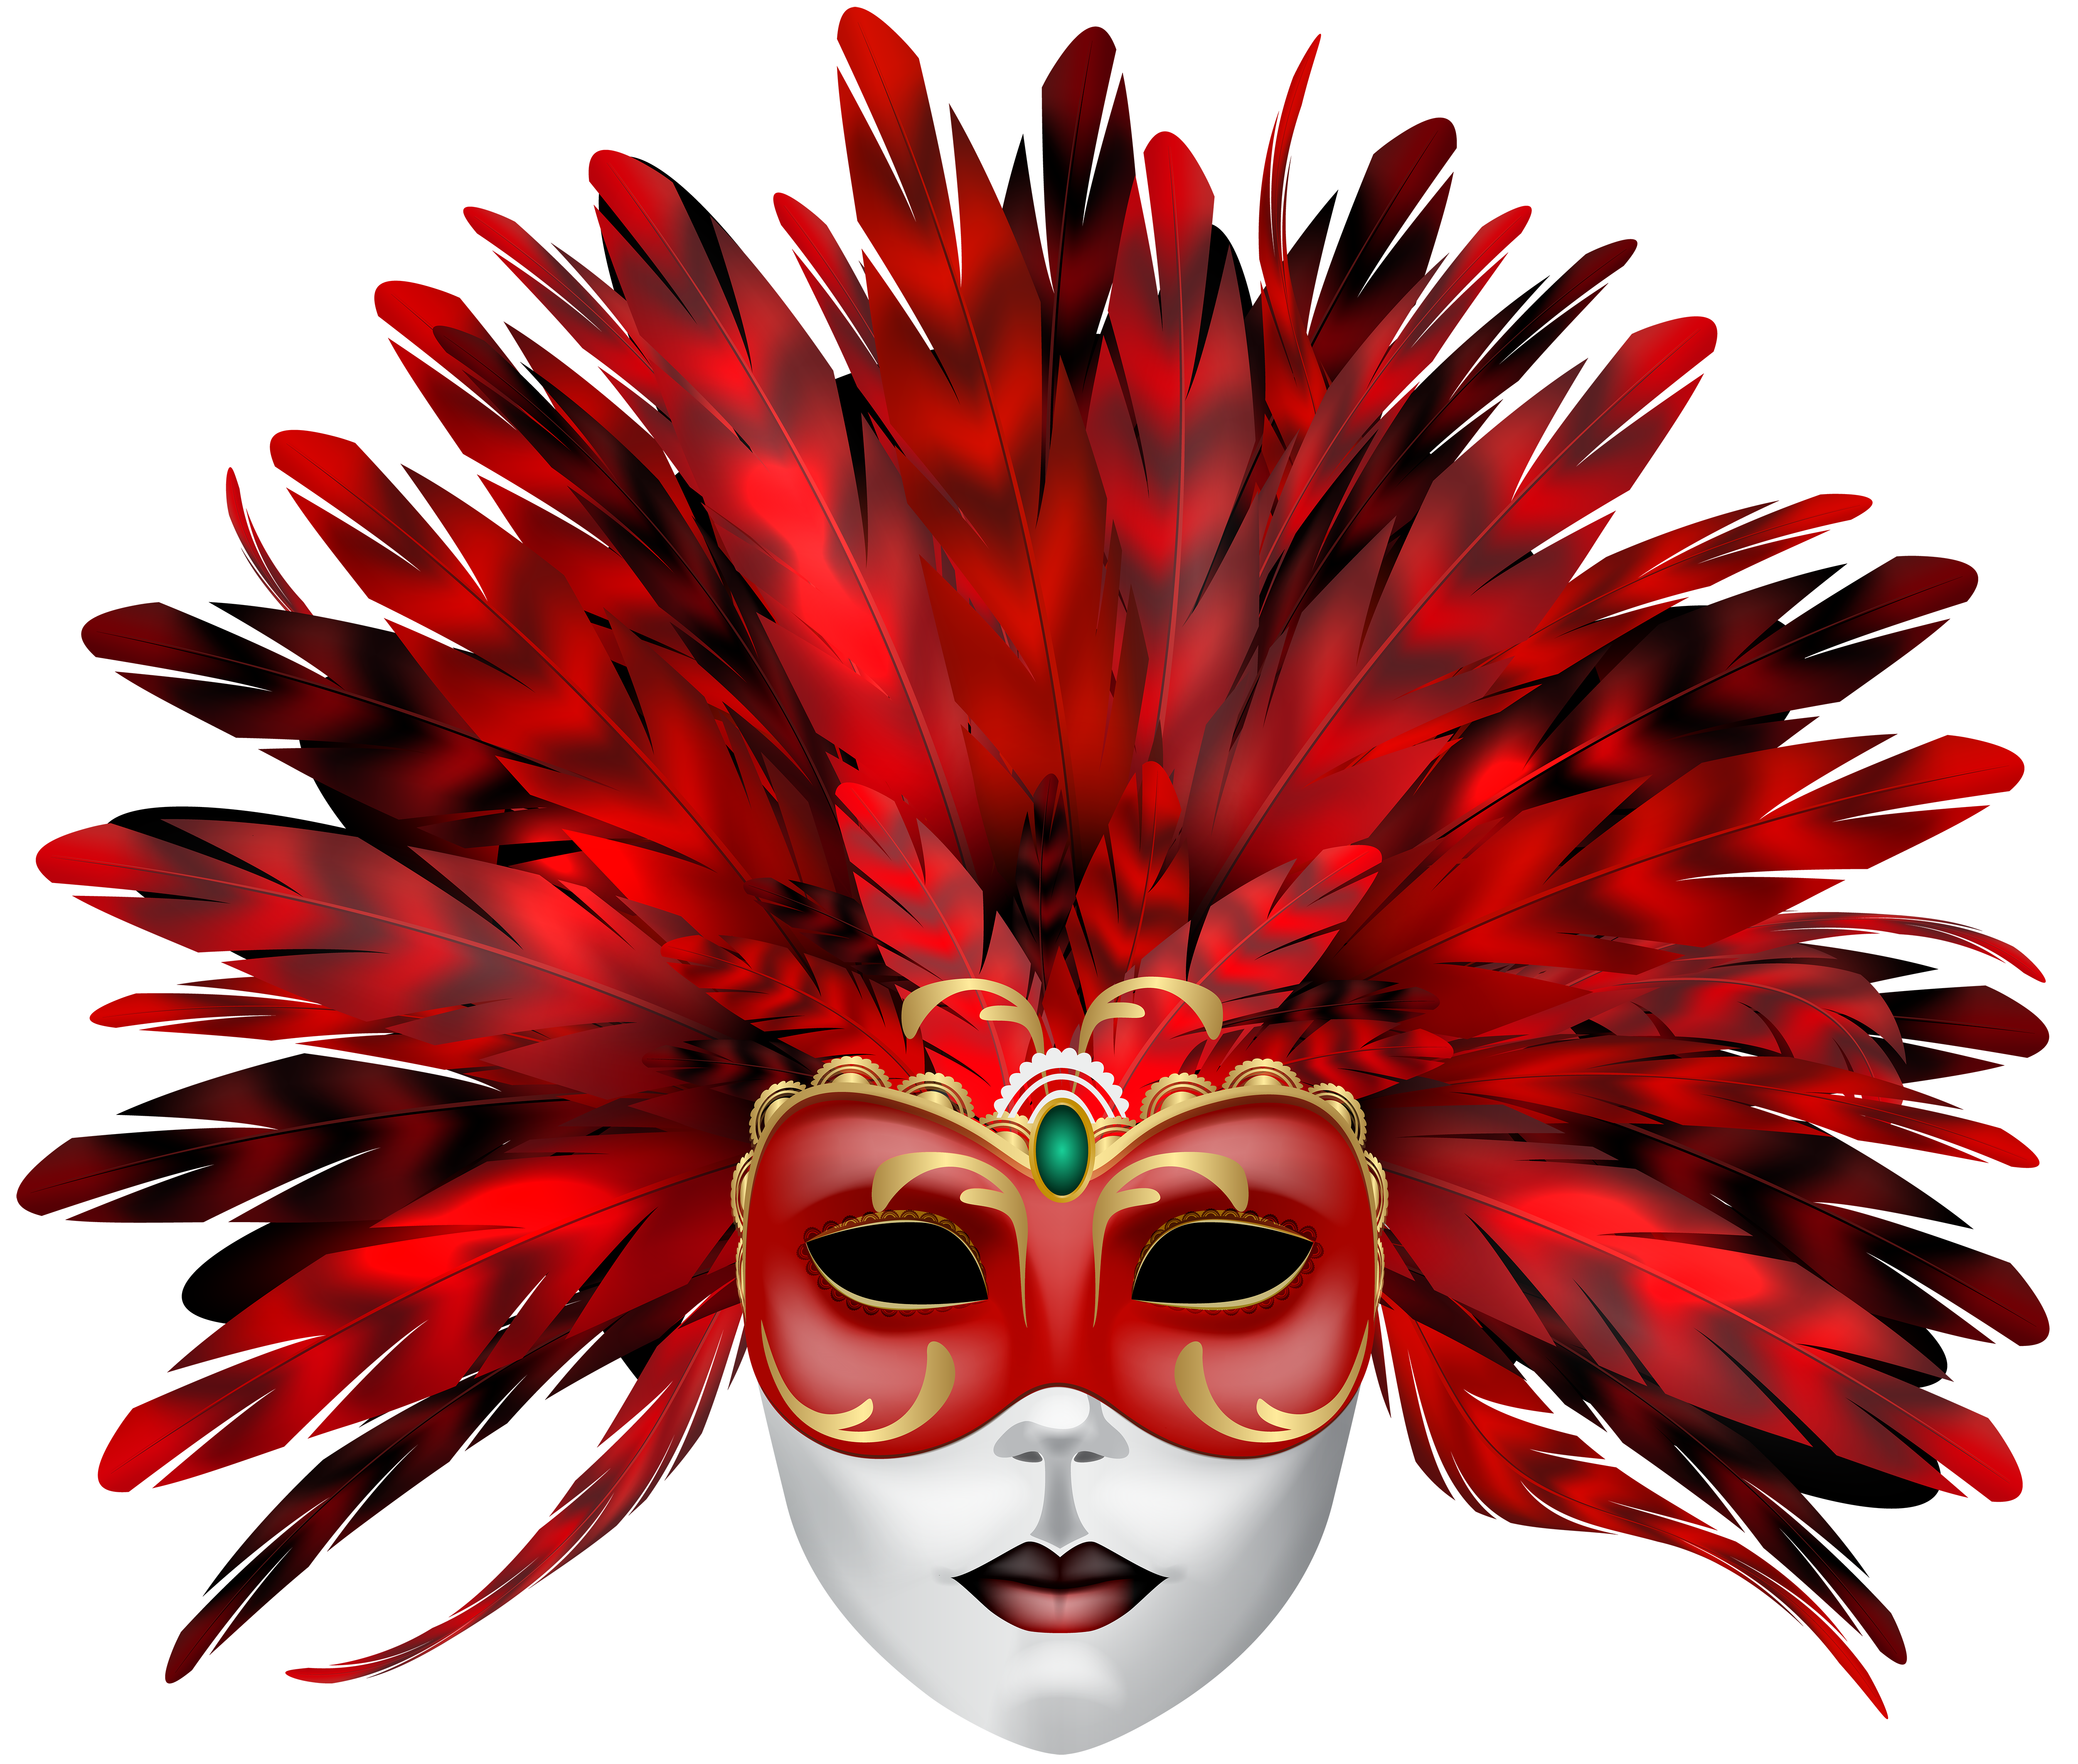 Carnival mask red png. Hurricane clipart flooded street